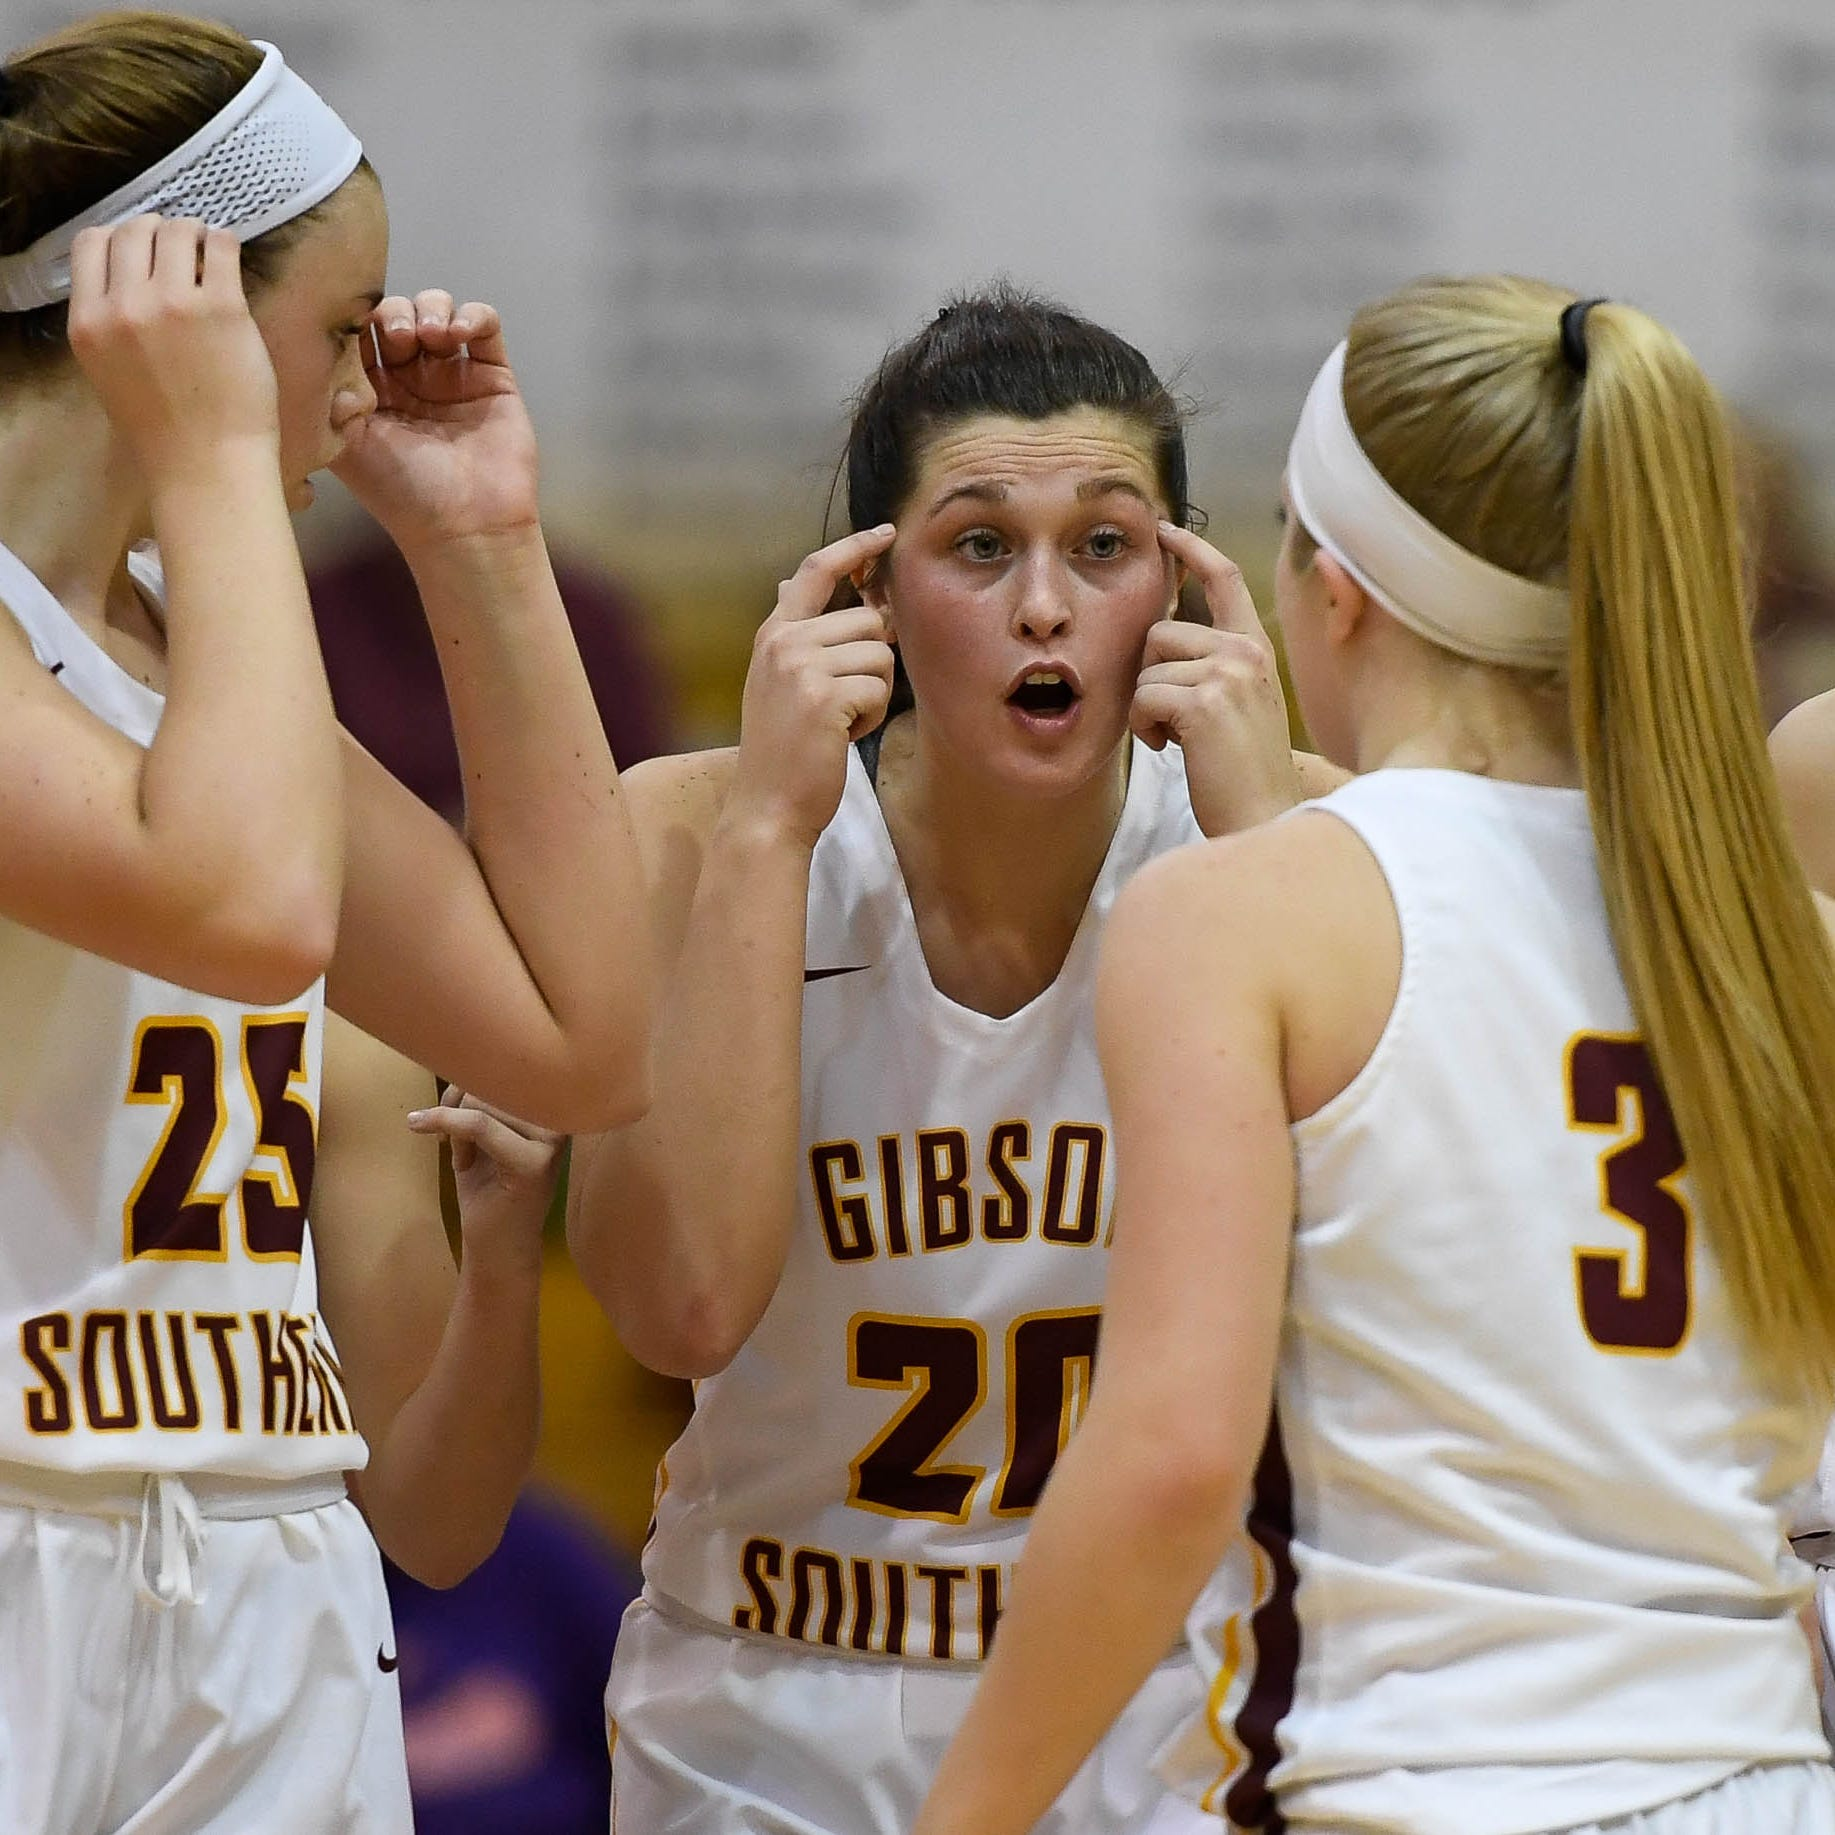 IHSAA girls basketball regionals: What to expect, who to watch and more